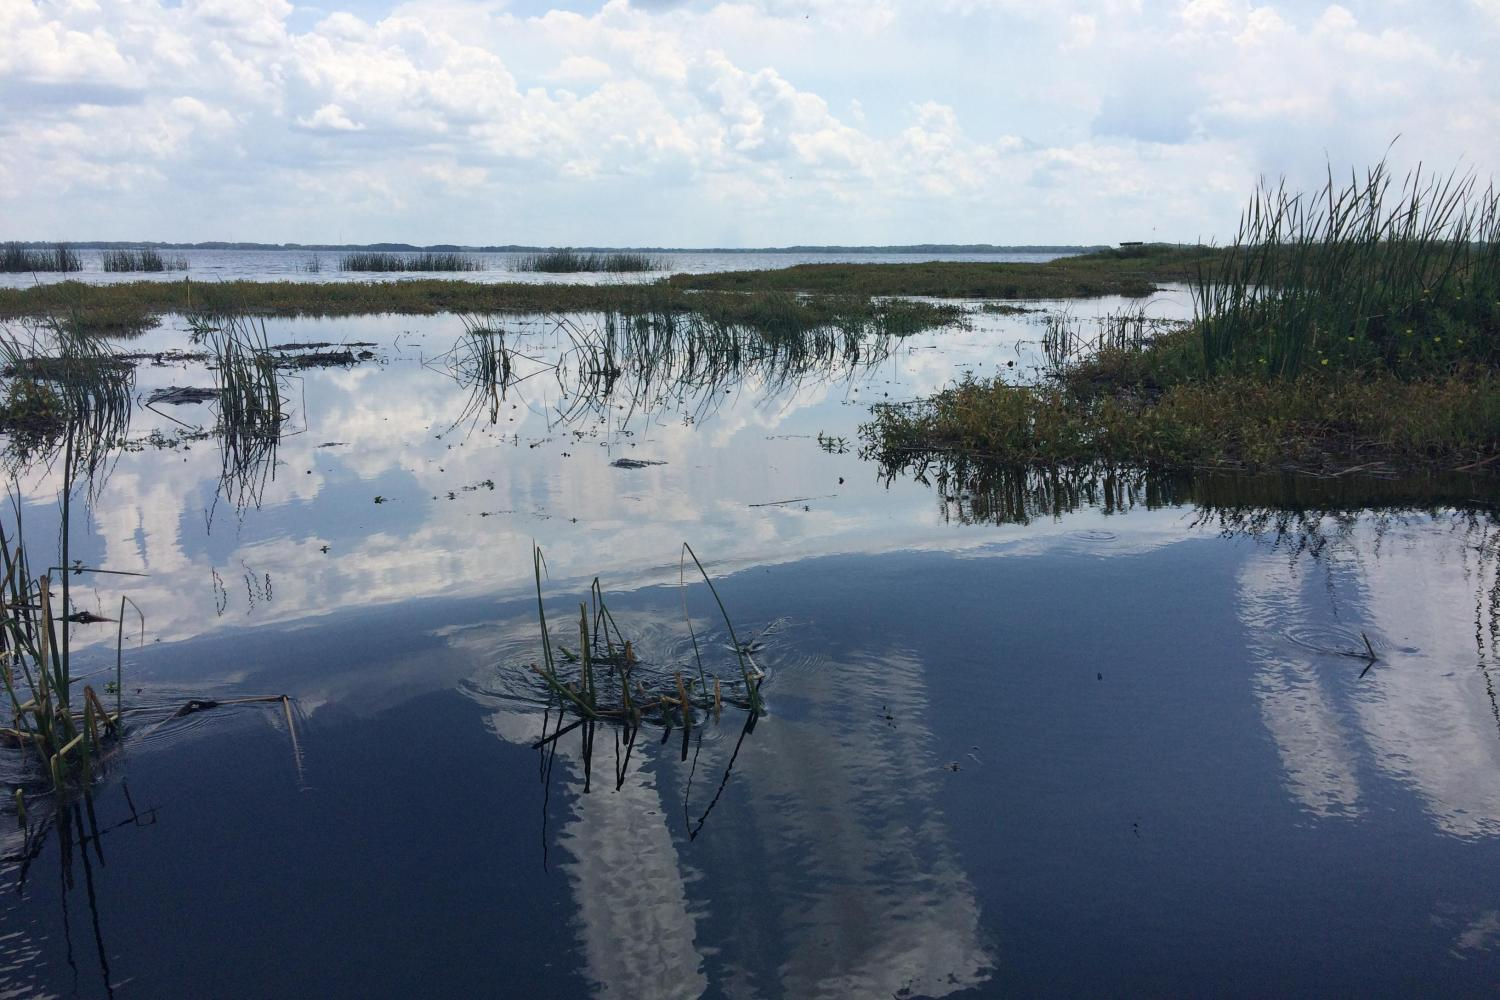 Ultimate Airboat Ride At Wild Florida from Orlando